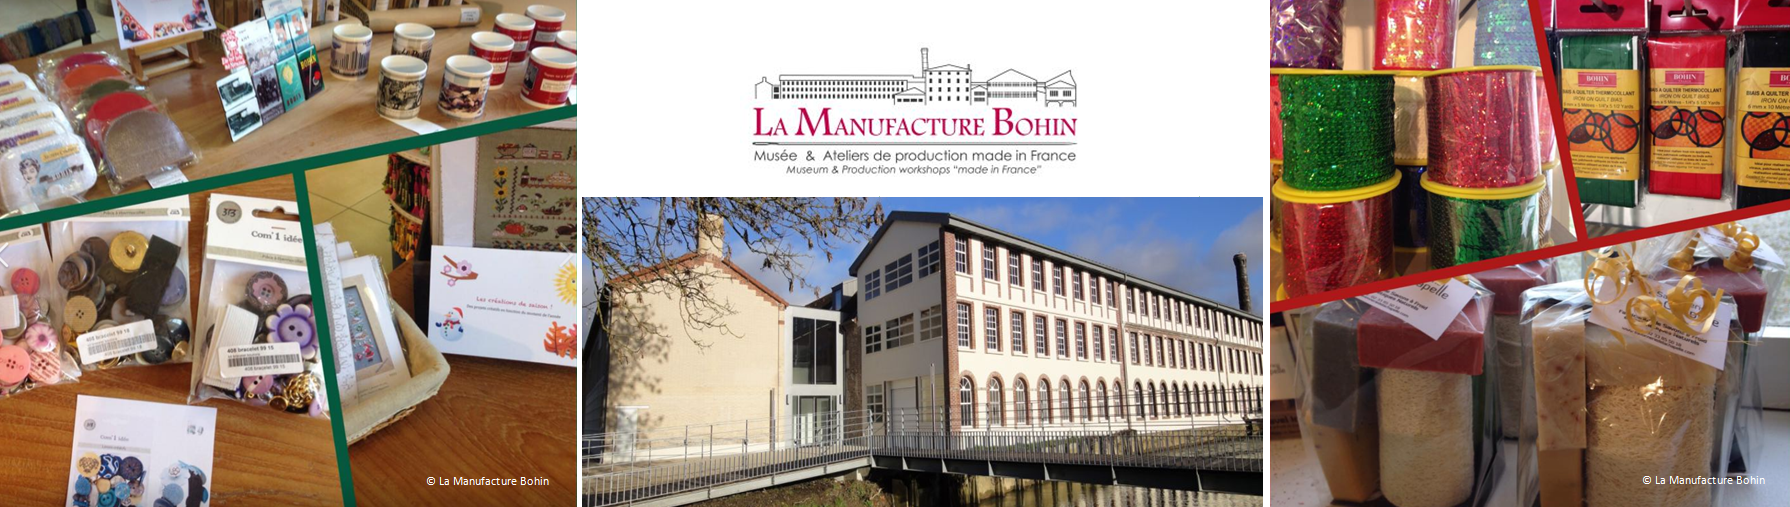 #La Manufacture Bohin - Boutique